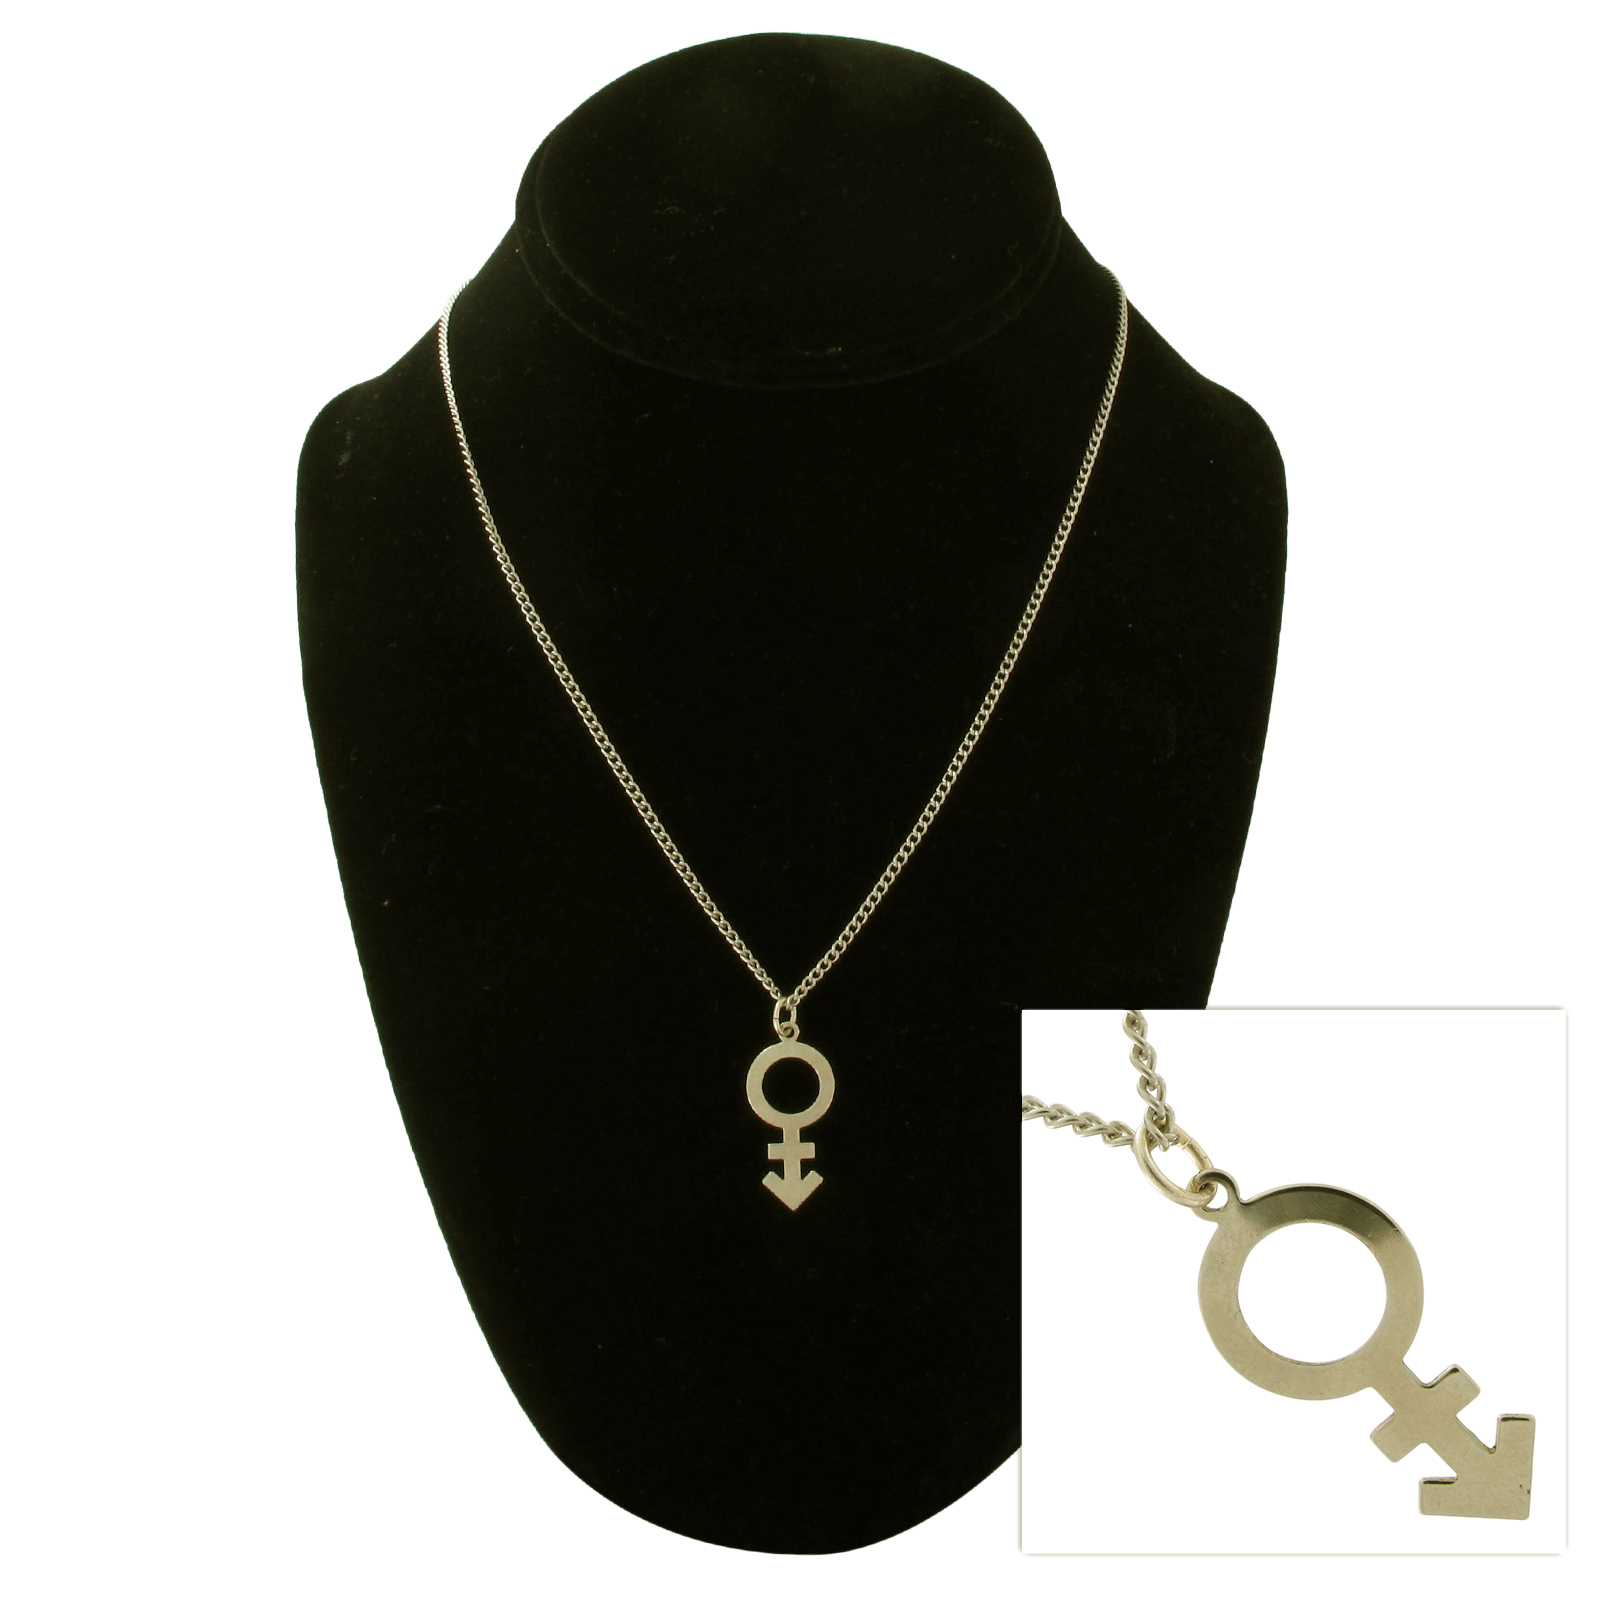 USA Made Gold Tone LGBT LGBTQ Transgender Symbol  Pendant Necklace Thumbnail 1